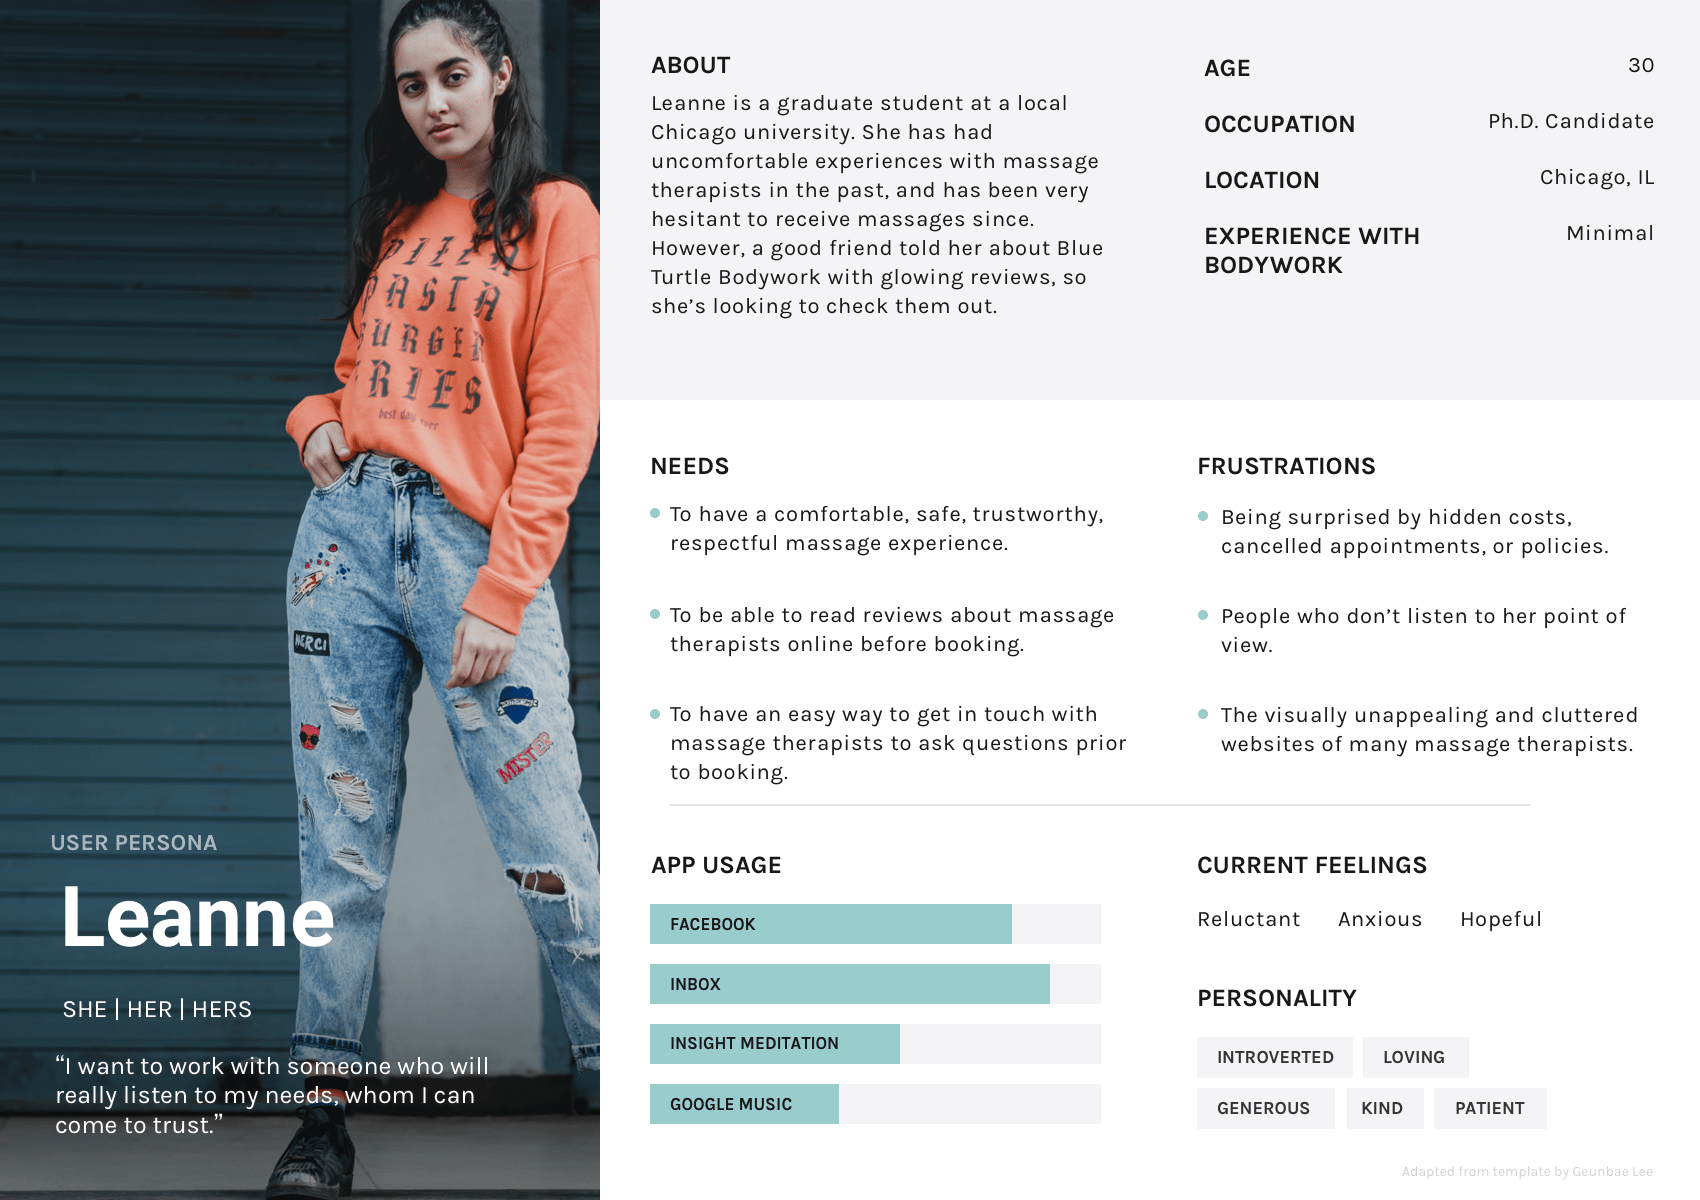 Document showing a person in their 20s named Leanne, who represents a target audience group. The document includes a bio and personality information about this hypothetical character.